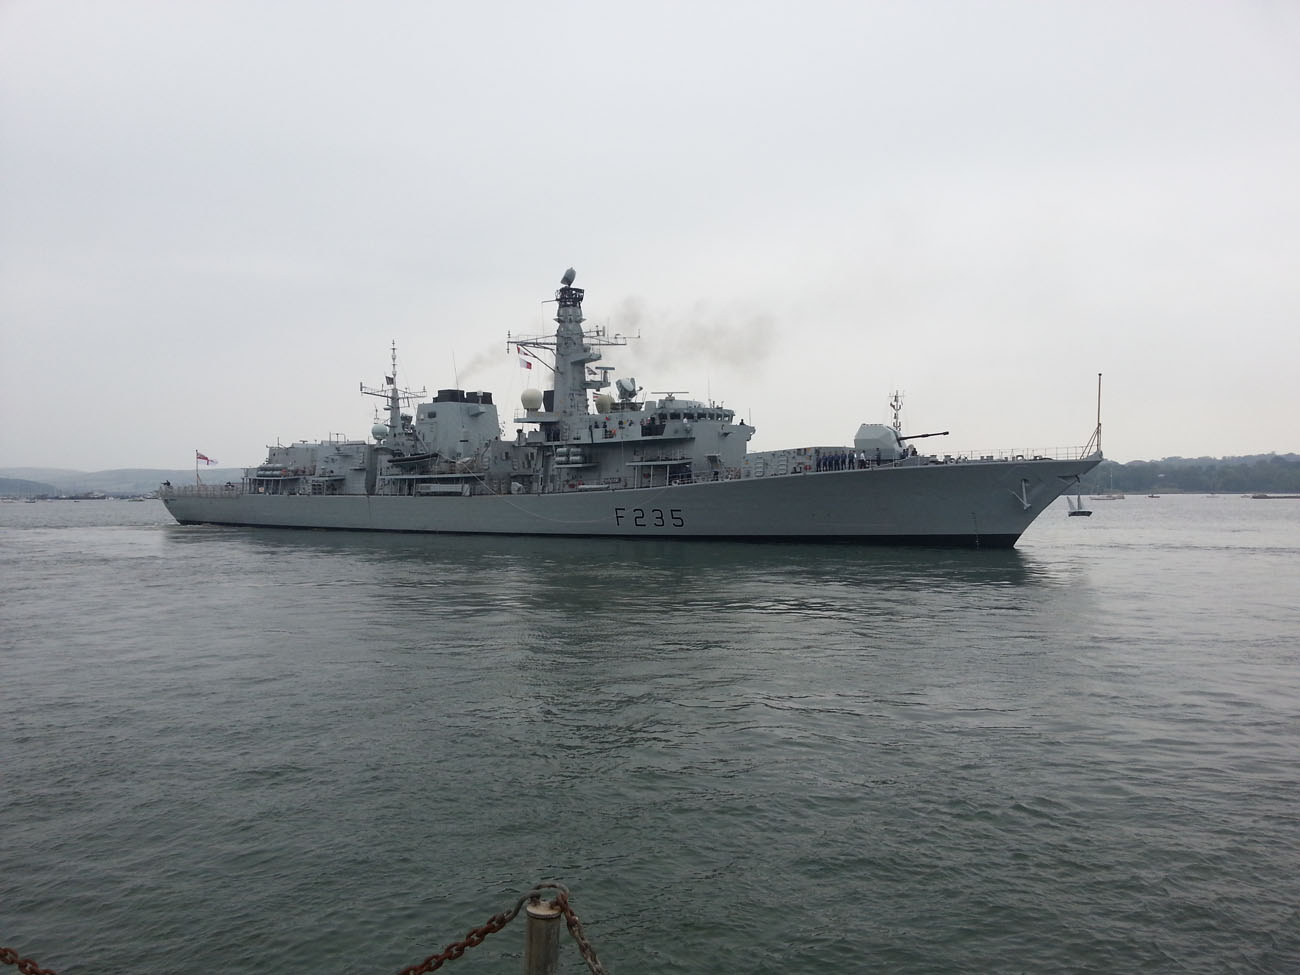 HMS Monmouth sails again